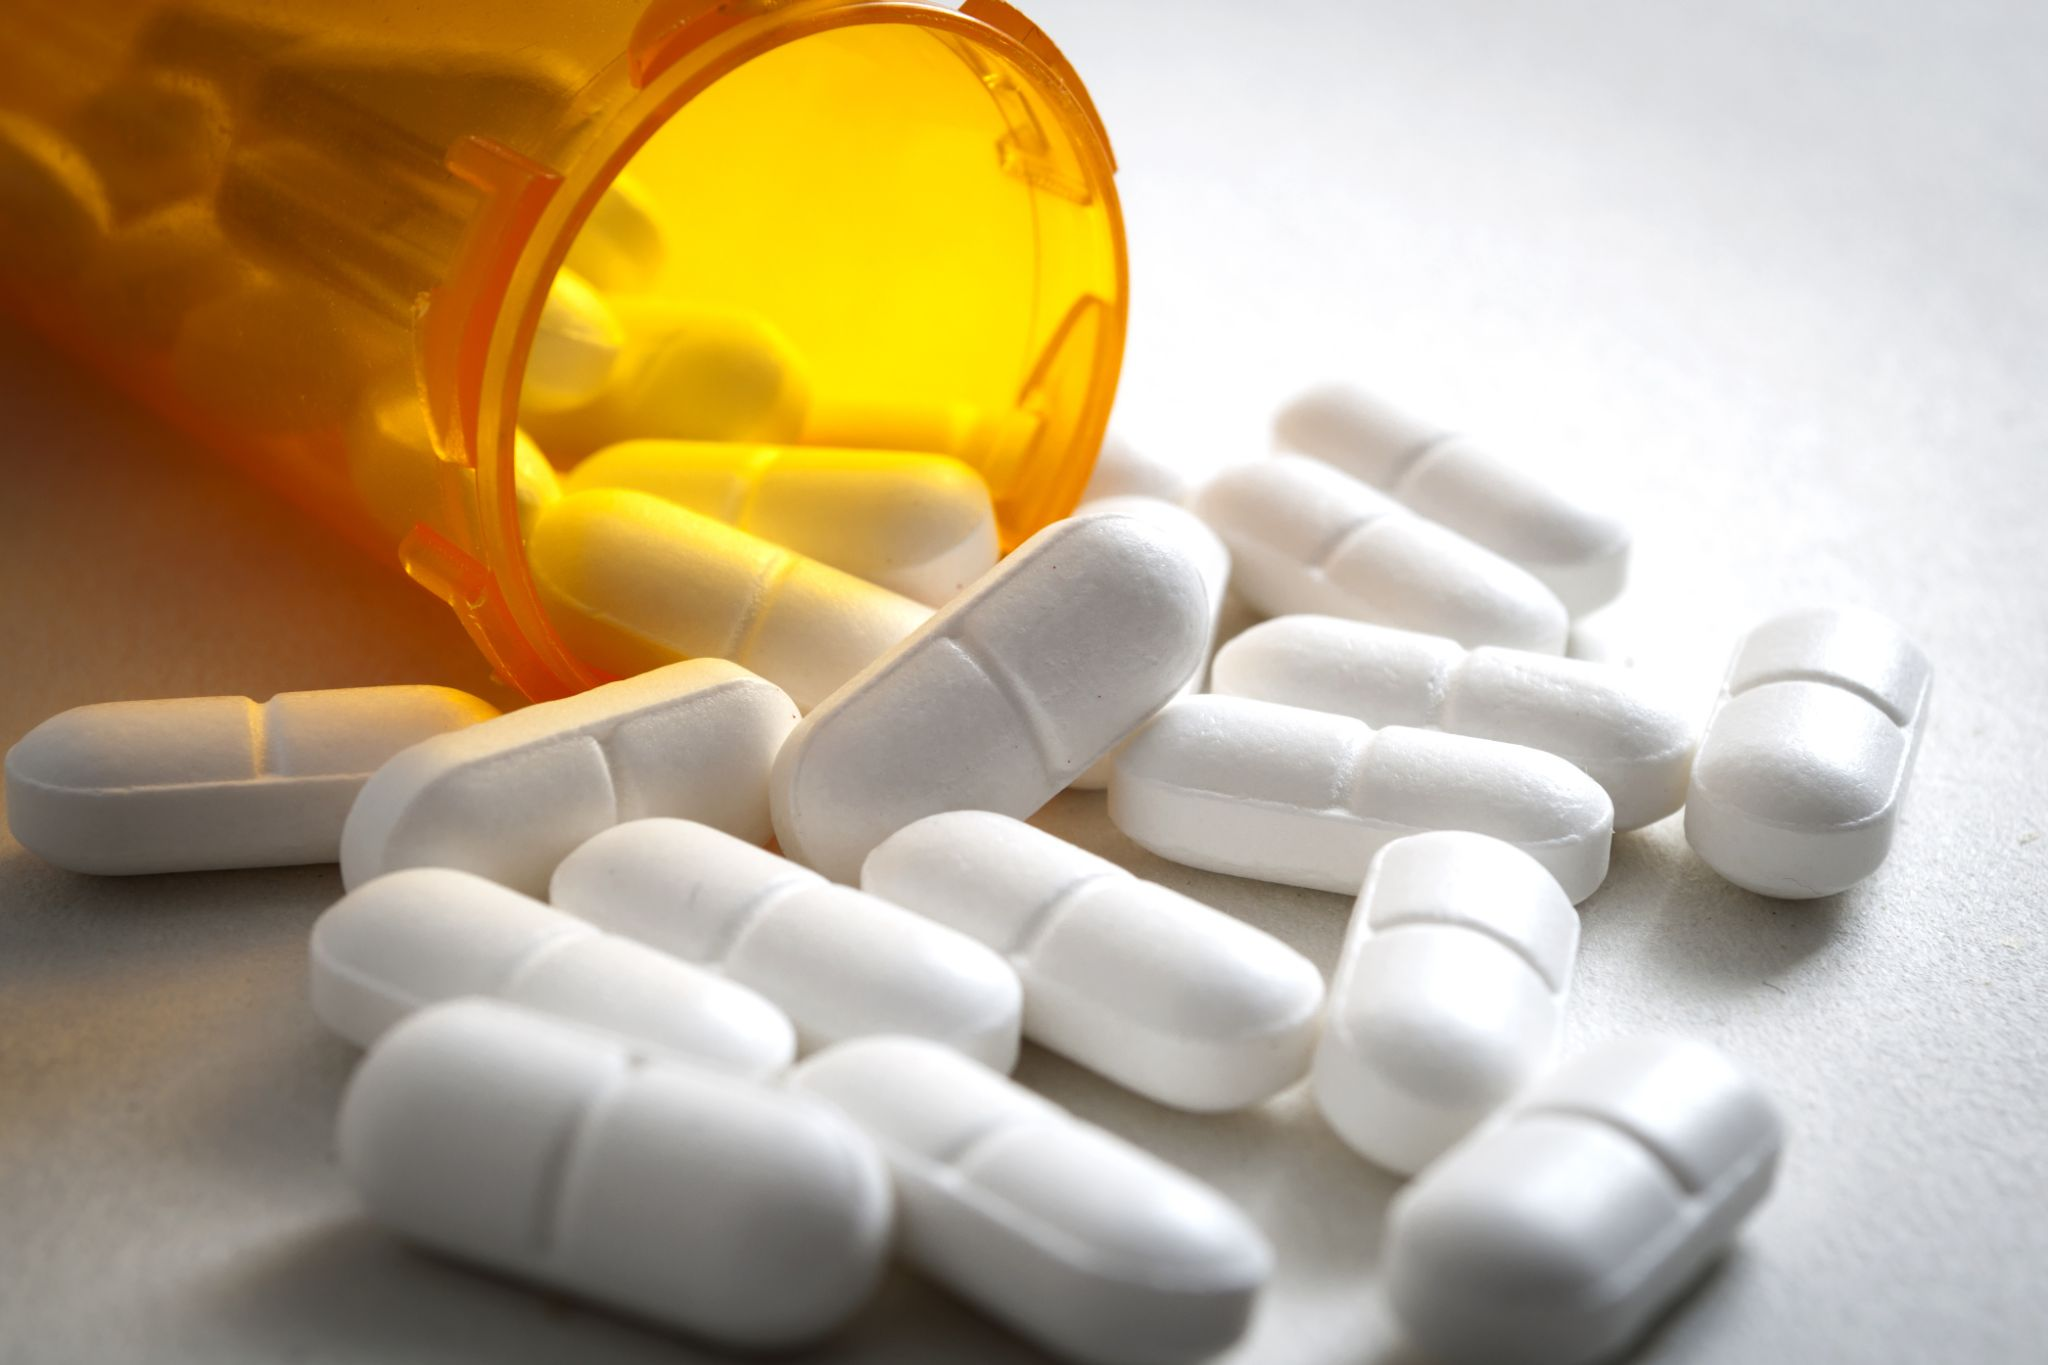 What Are the Side Effects of Vicodin Abuse?